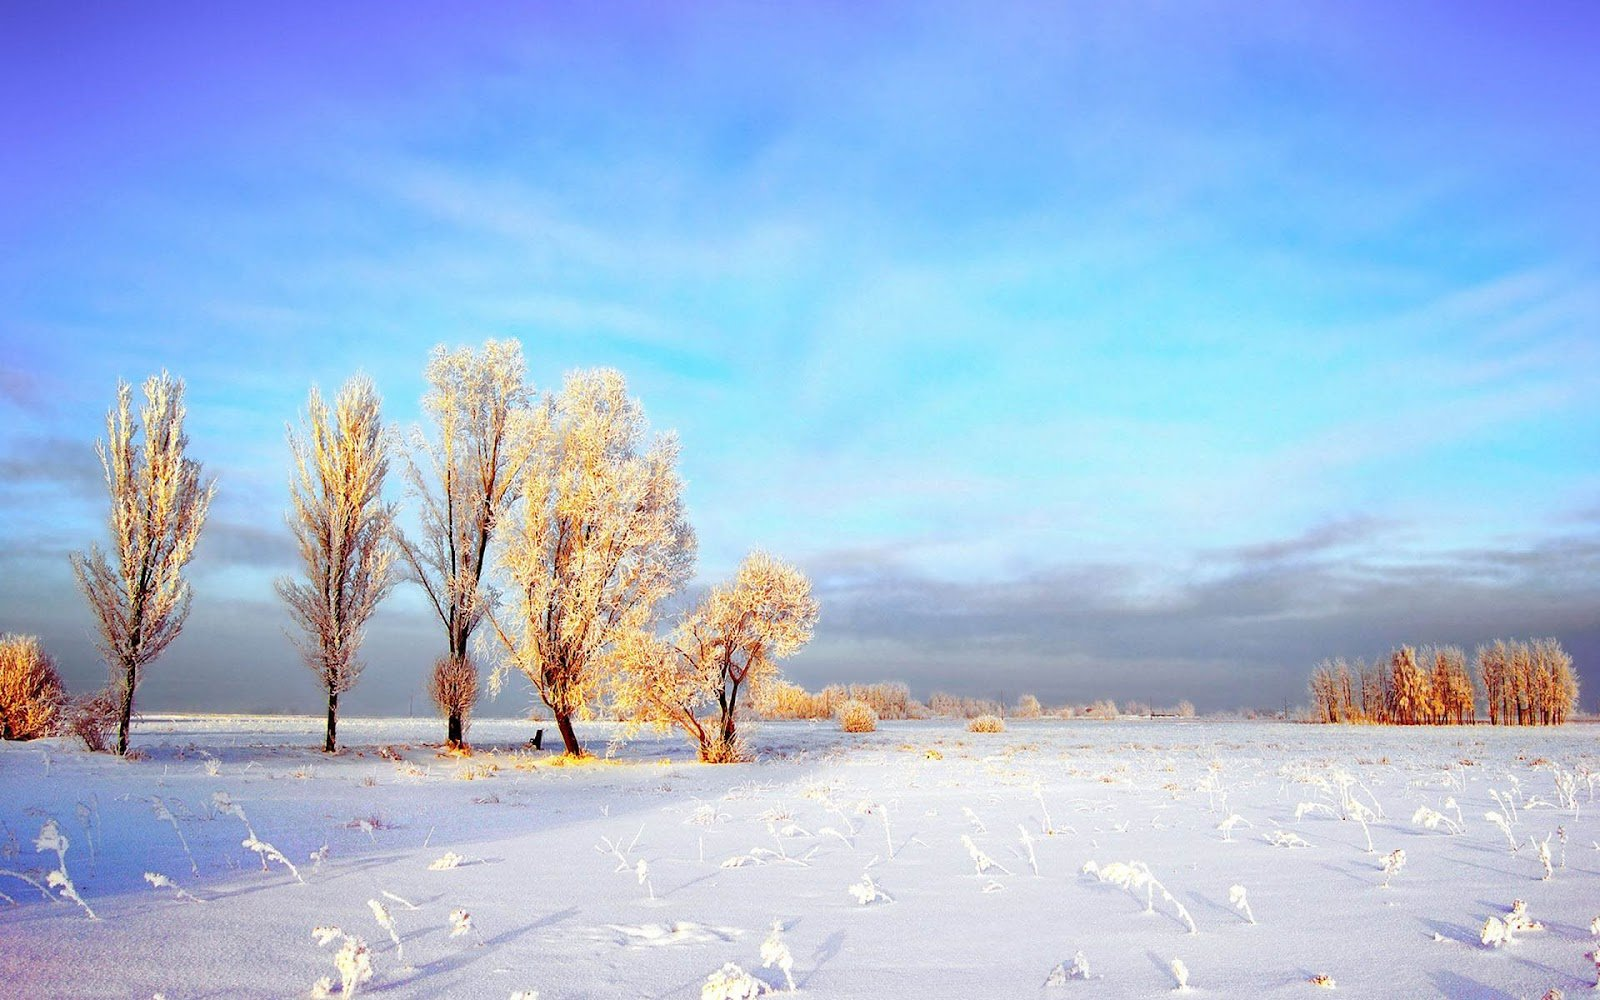 Winter Scenes Wallpaper wallpaper wallpaper hd 1600x1000